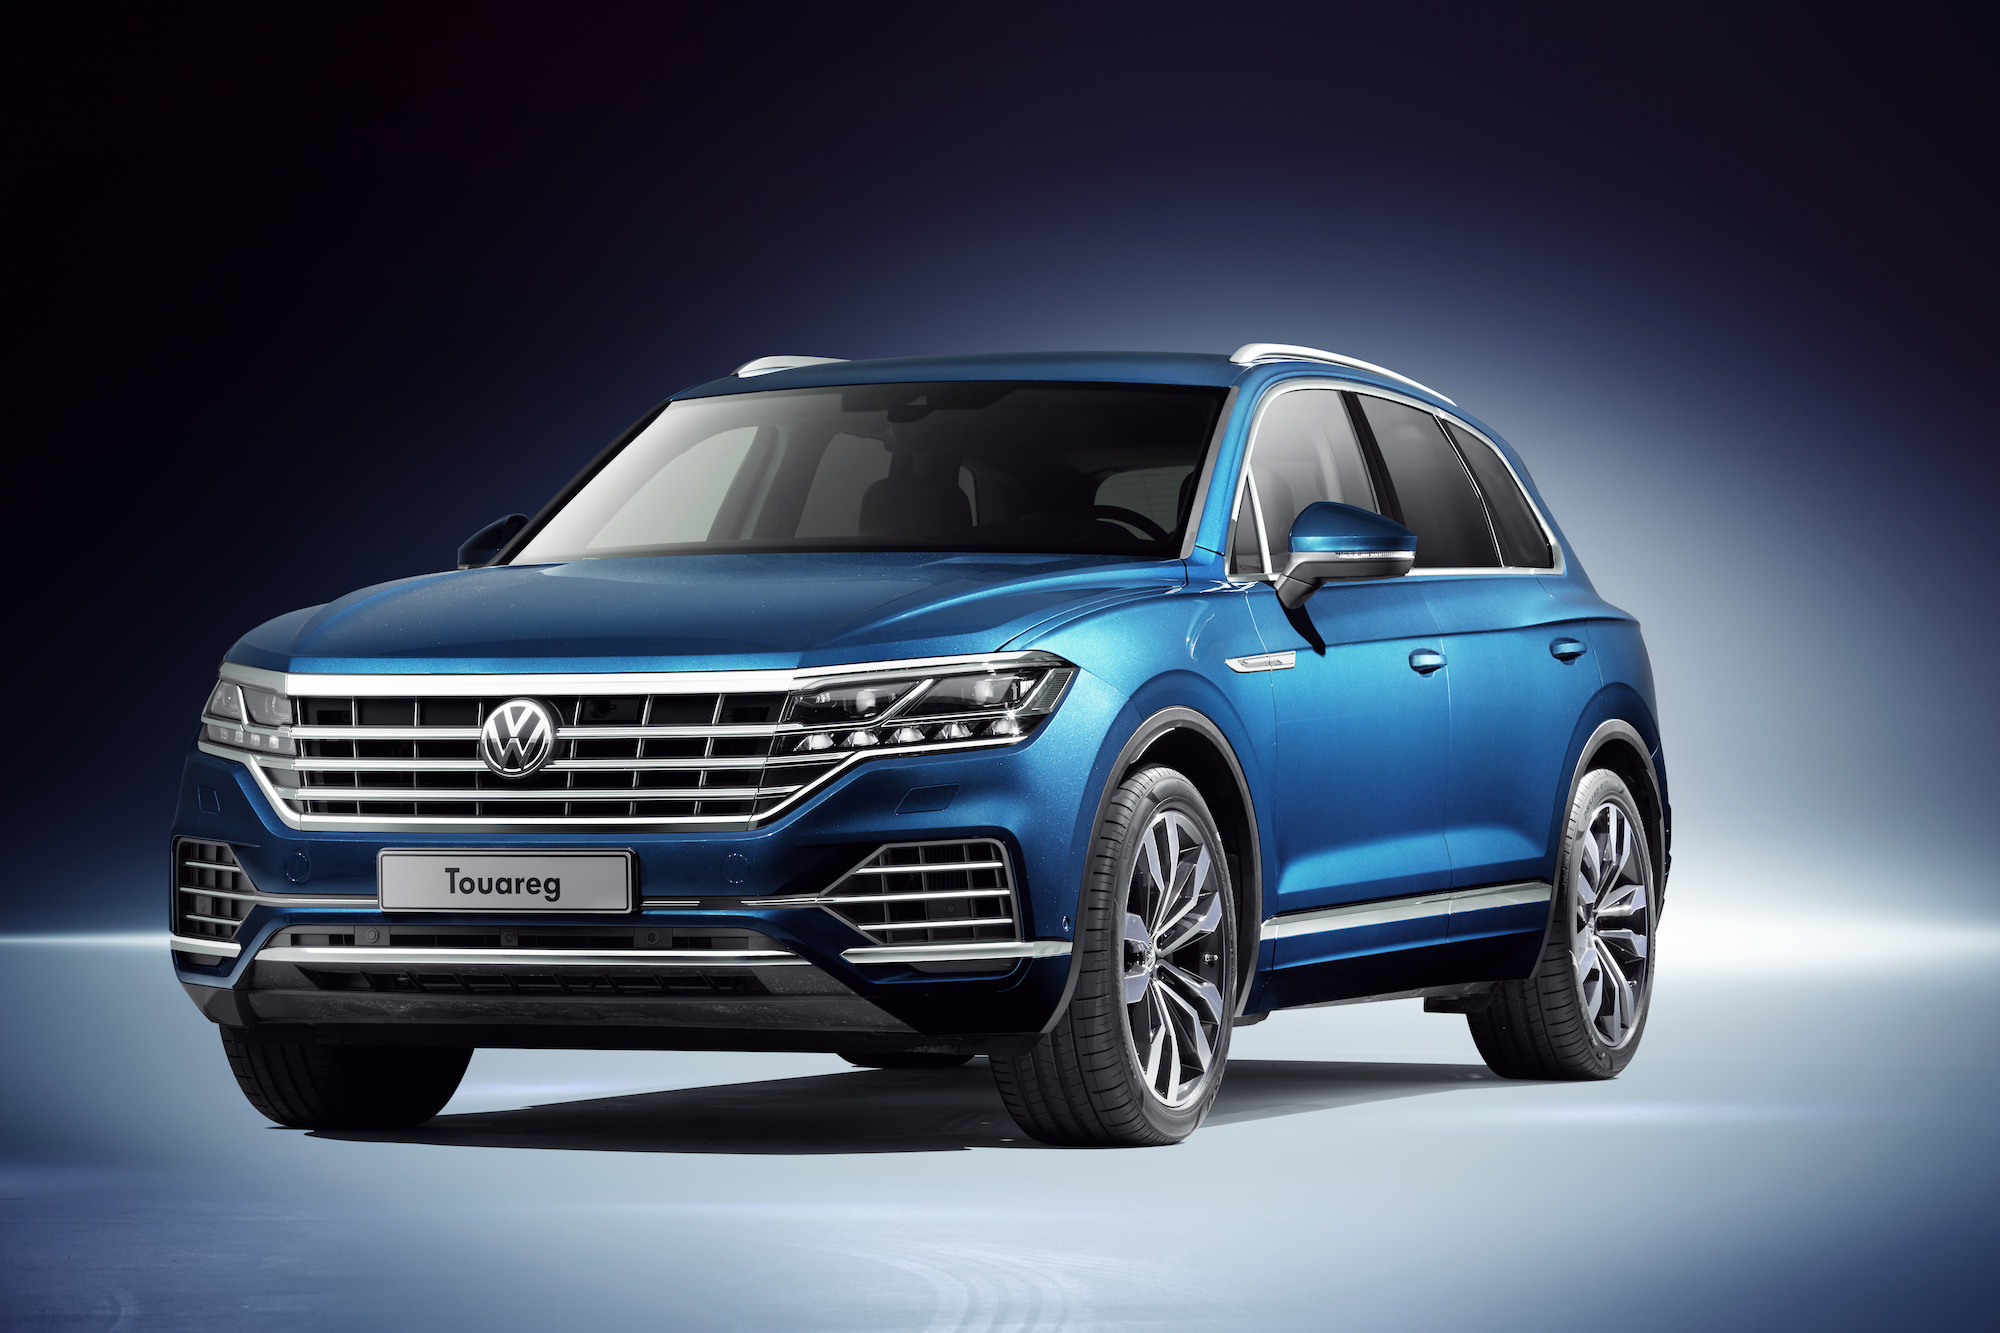 The new Touareg is VW's most advanced vehicle yet